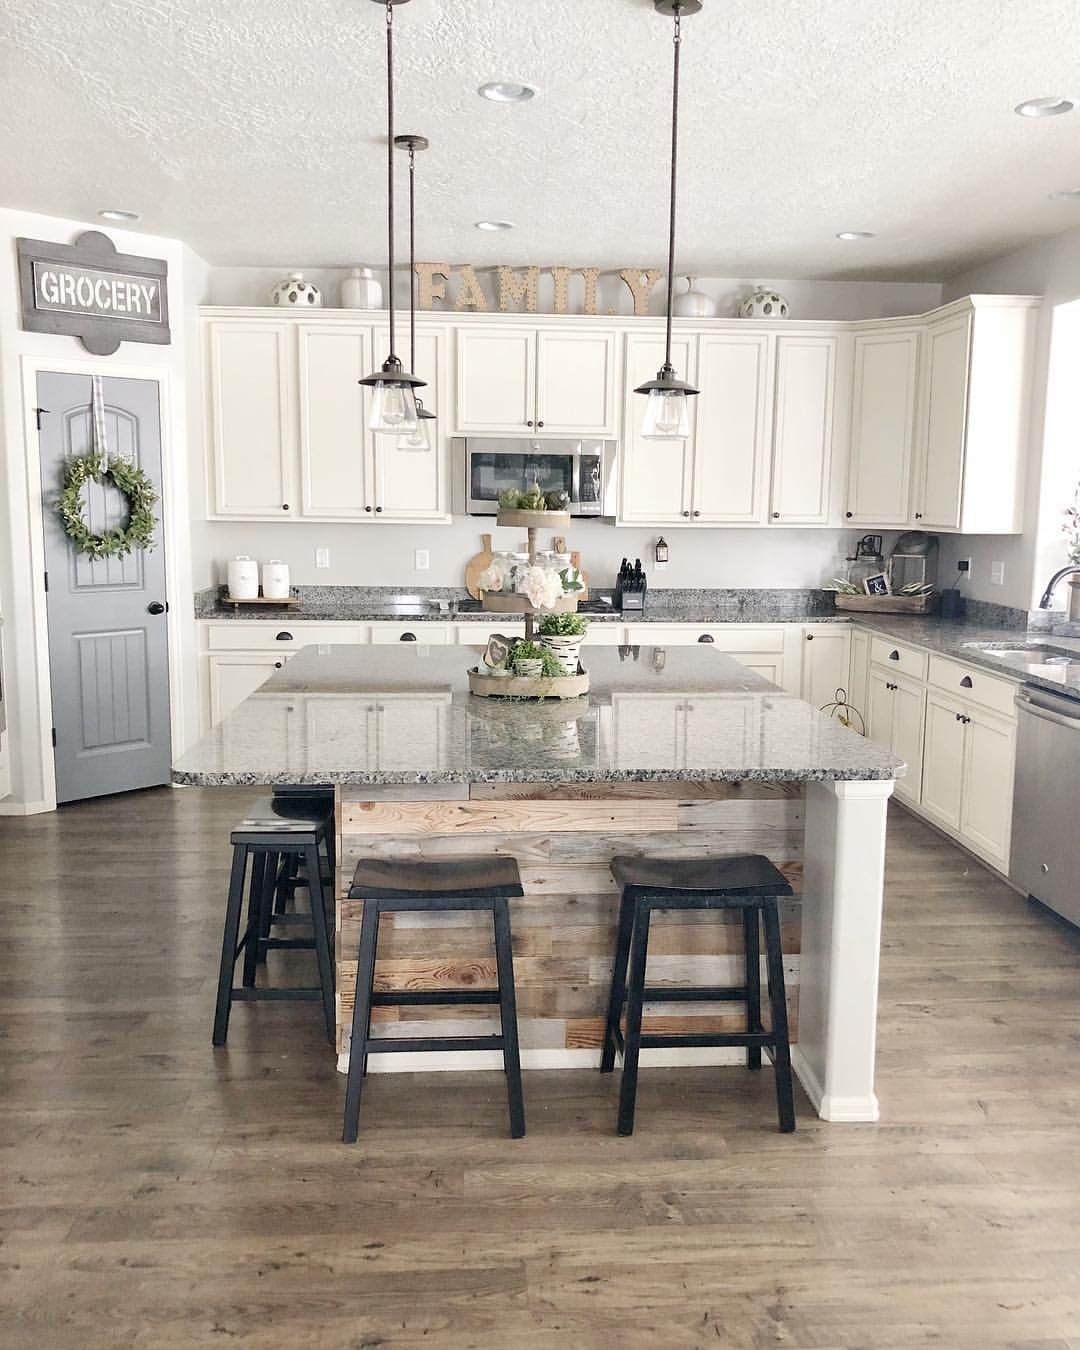 46 Best Farmhouse Home Decor Ideas You Will Totally Love: 2,434 Followers, 1,024 Following, 153 Posts